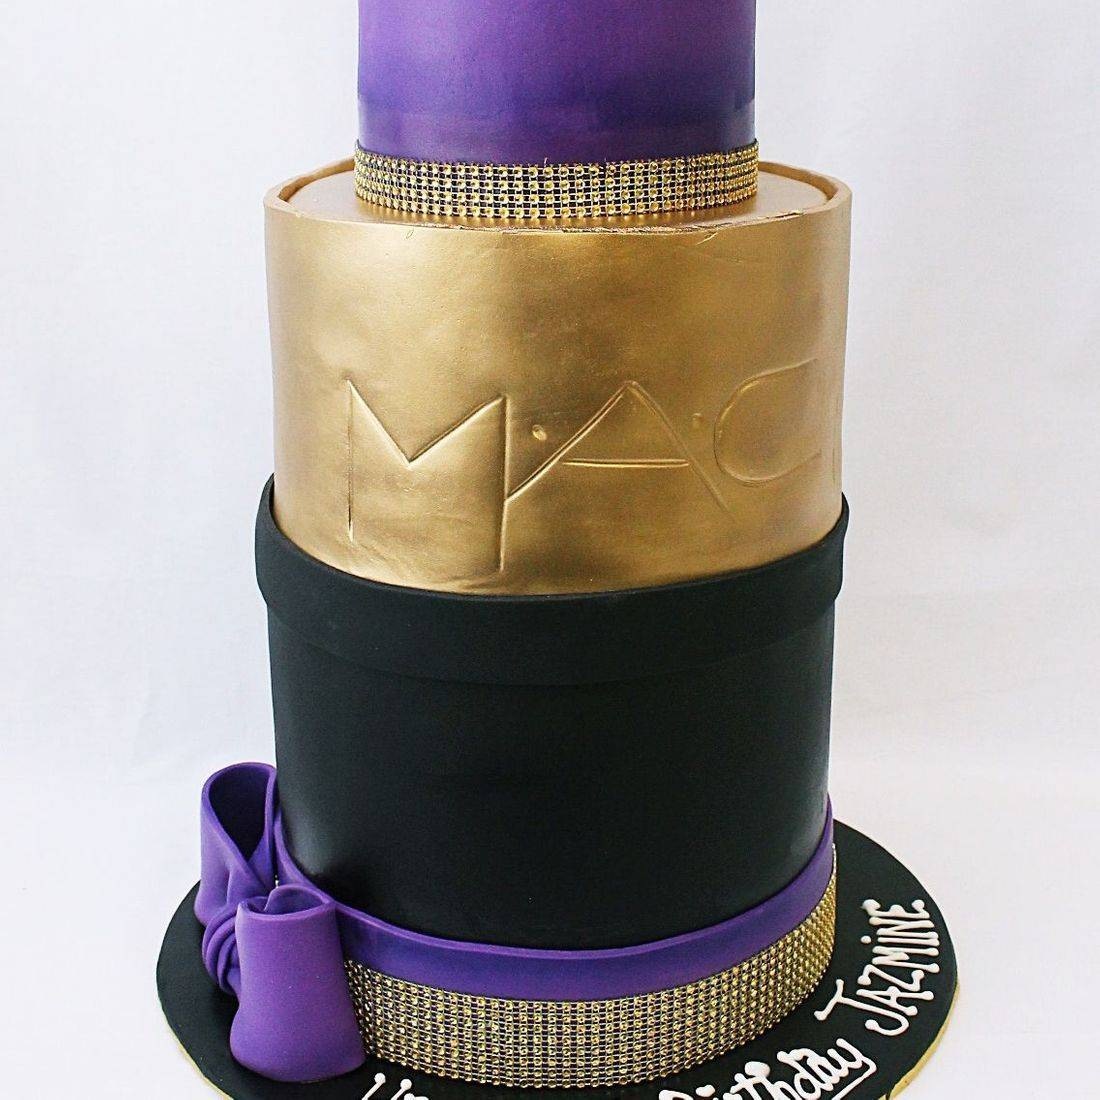 Giant MAC Lipstick Cake Carved Dimensional Cake Milwaukee